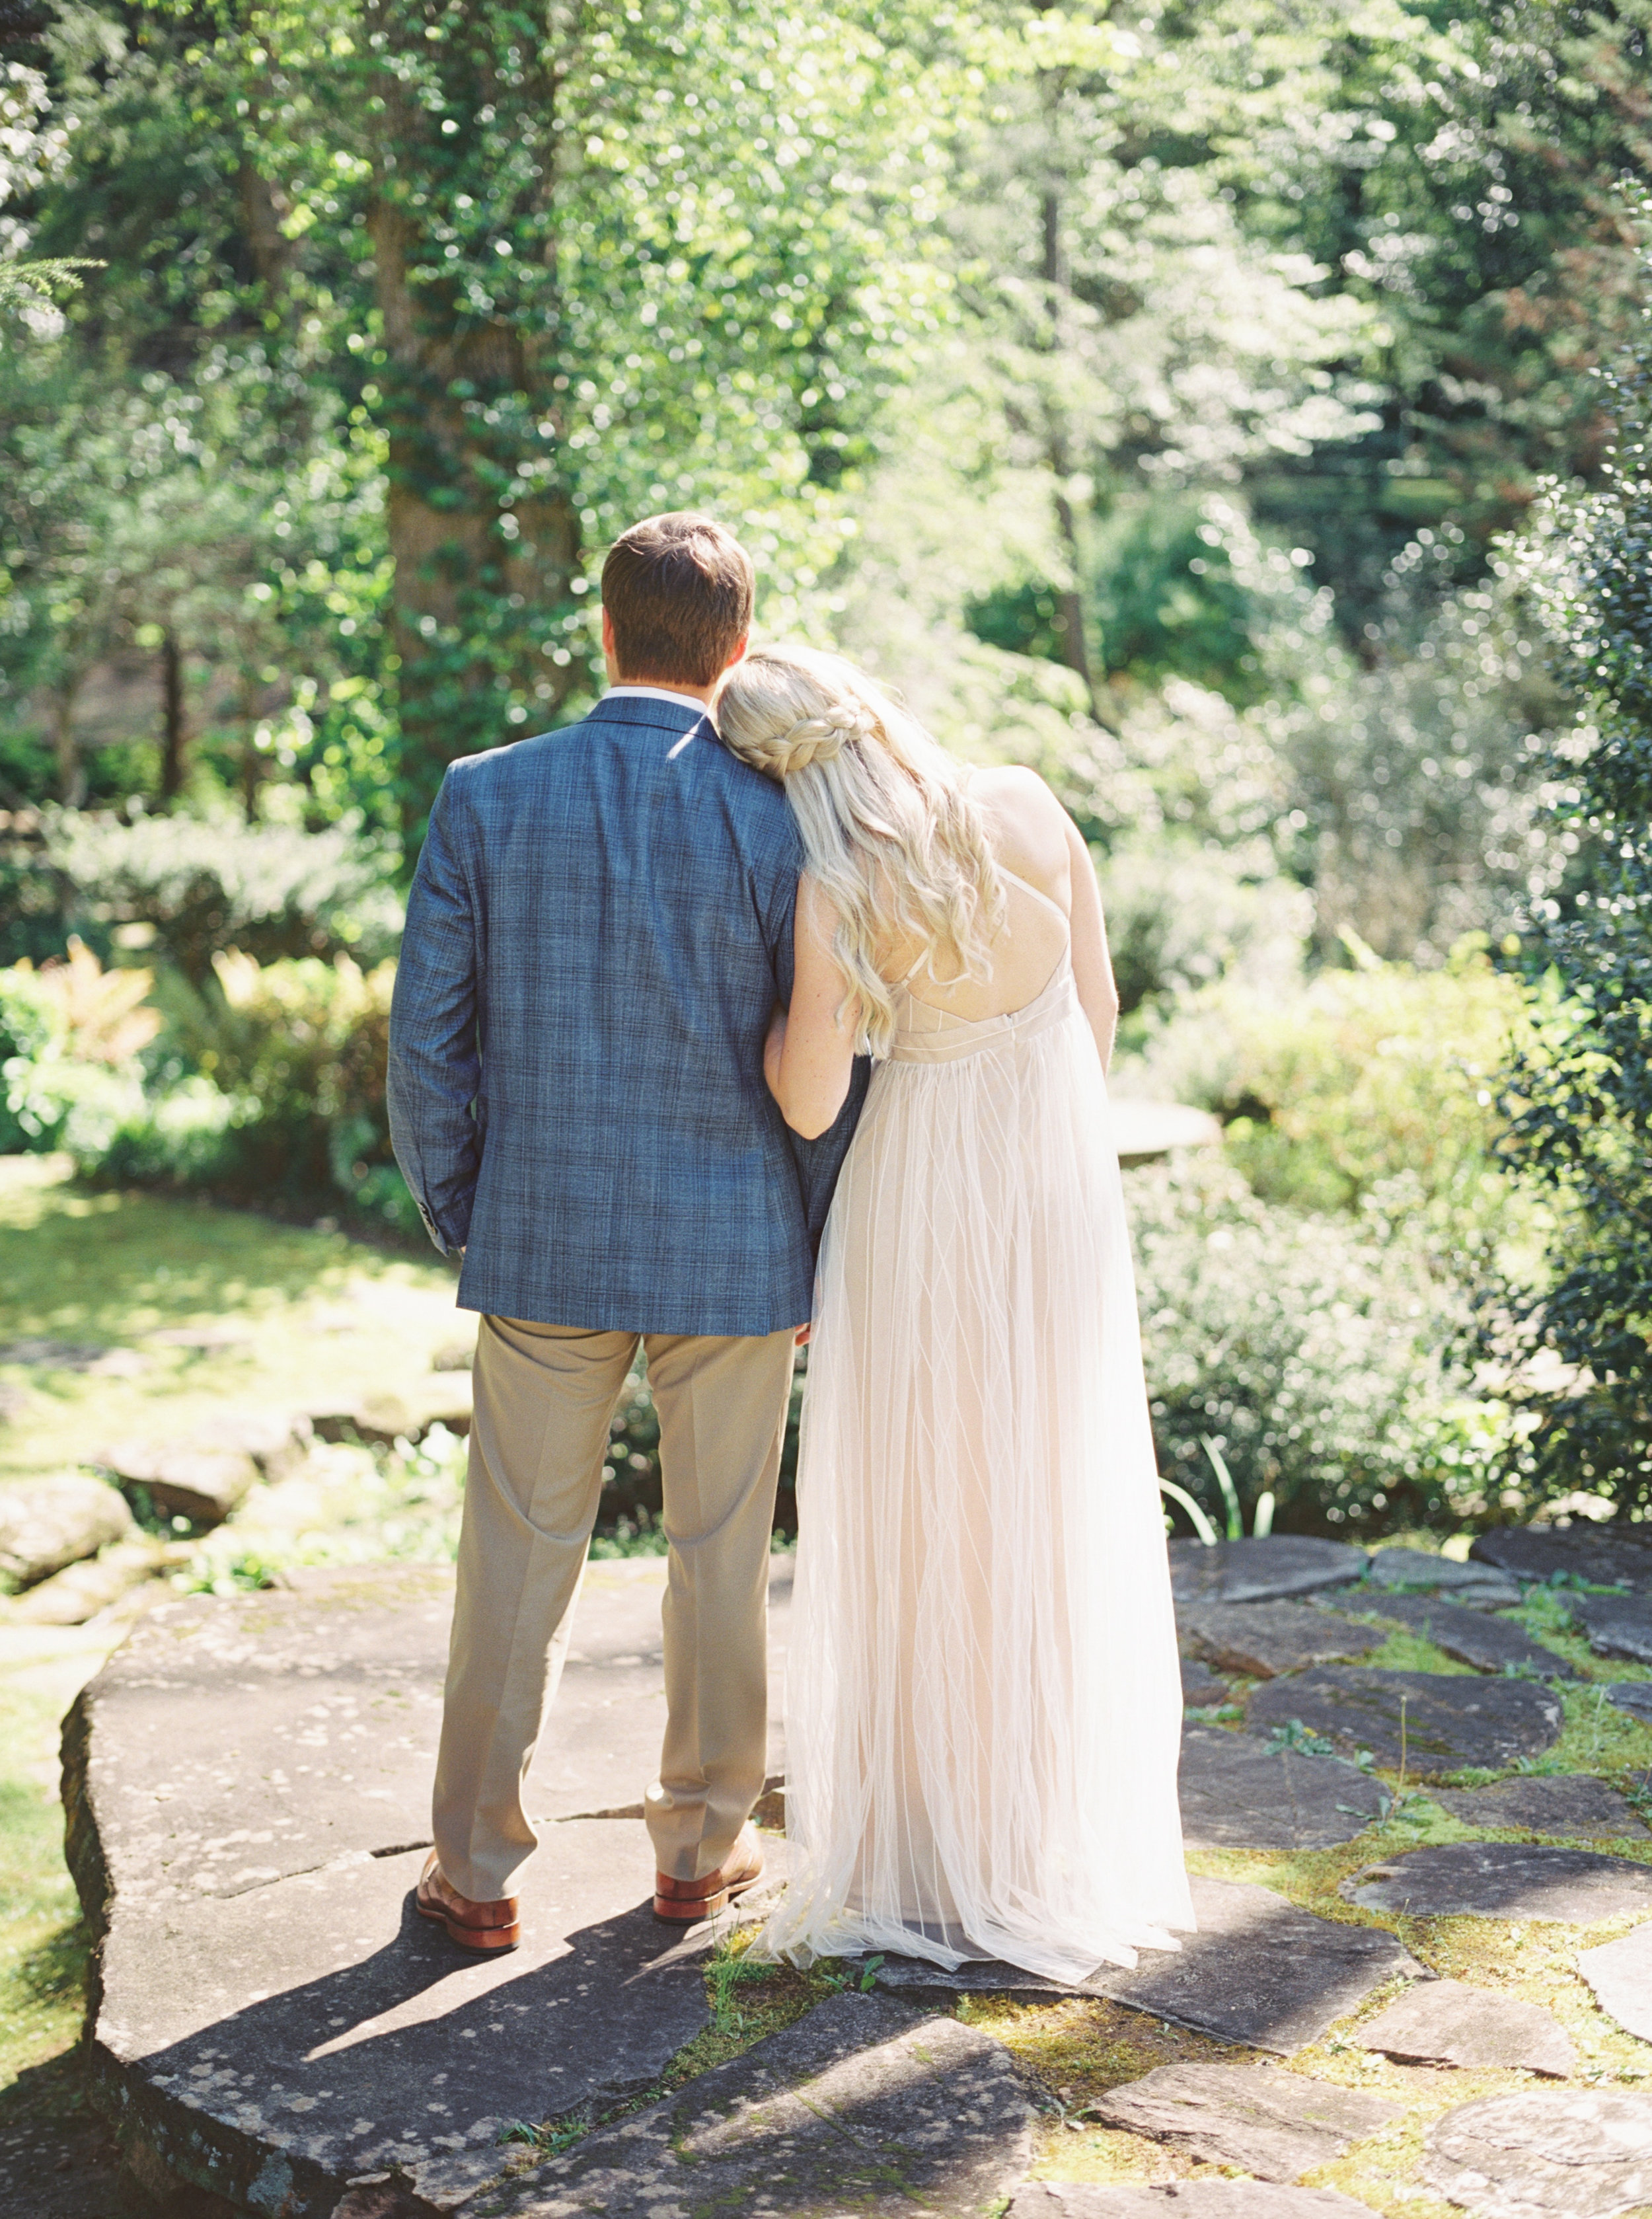 Erin_Johnny_Engagement_Dunaway_Gardens_Georgia_Film_Fallen_Photography-25.JPG